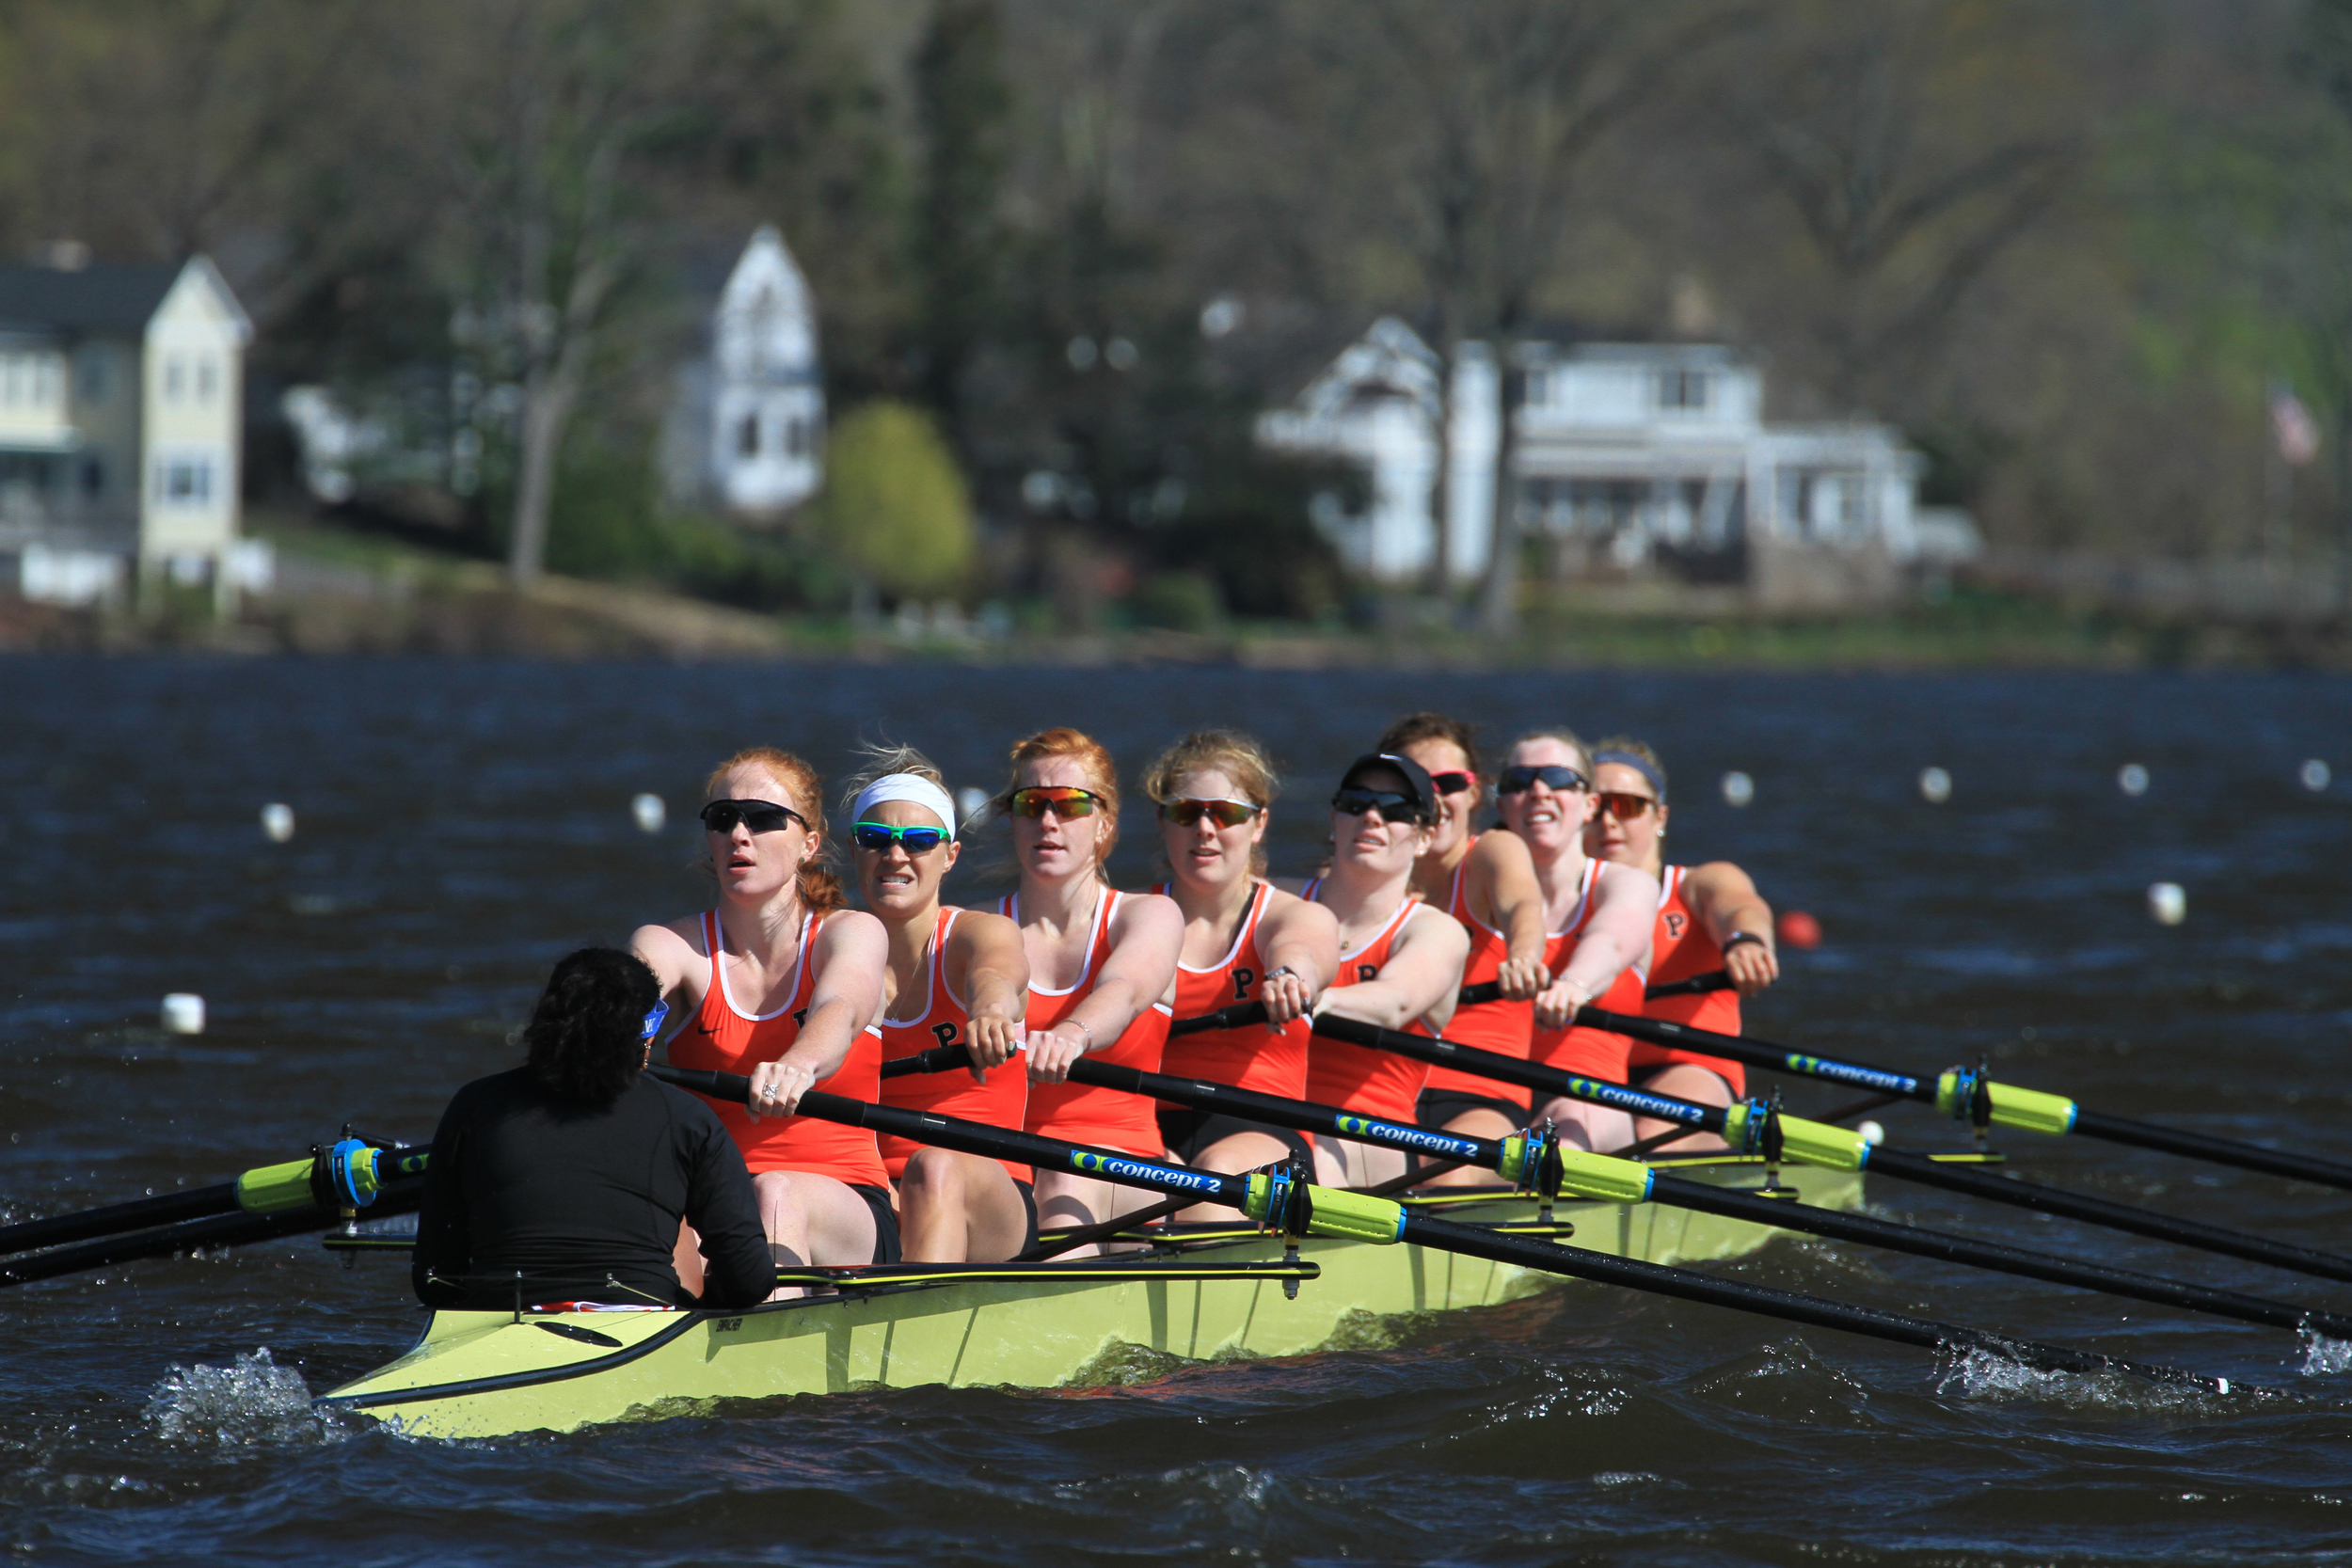 The openweight women's 1V competes for the Eisenberg Cup